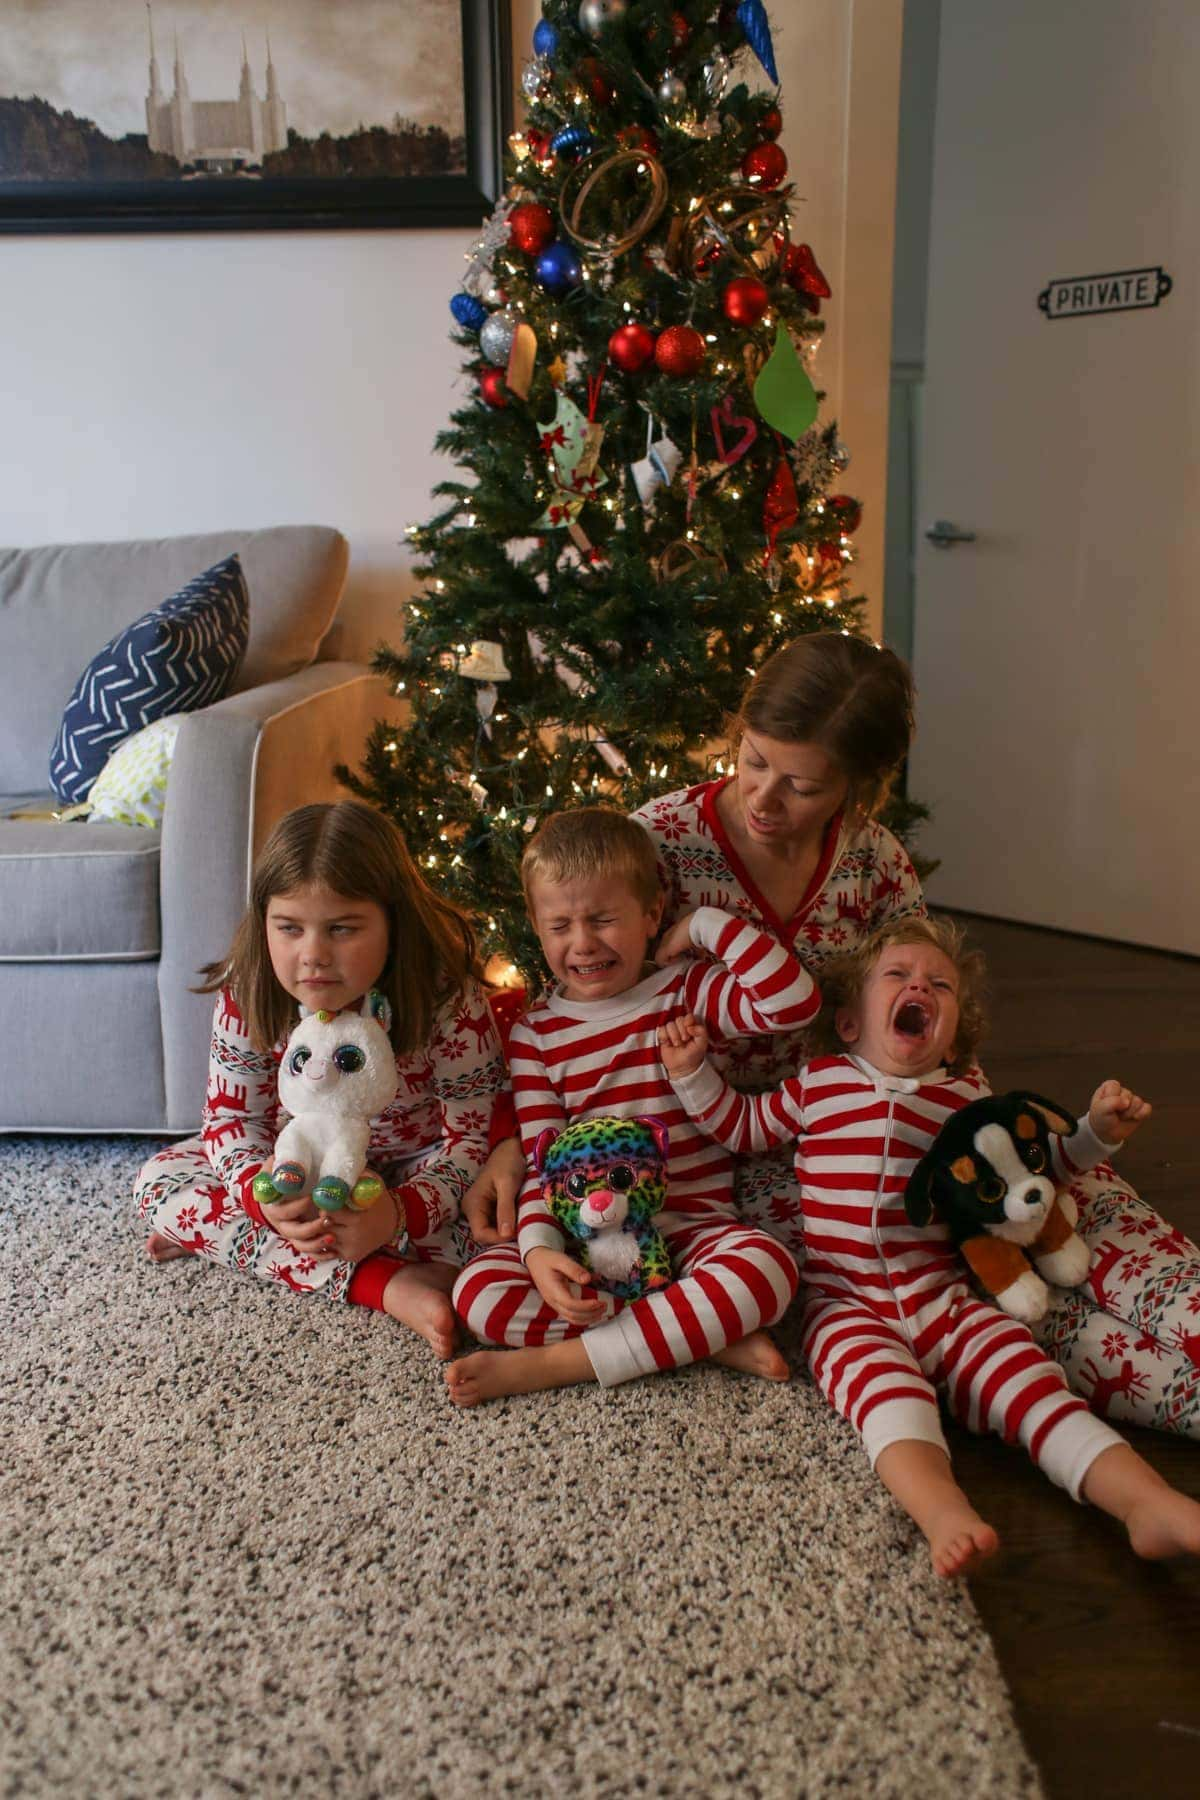 Lauren and the kids in front of the Christmas tree